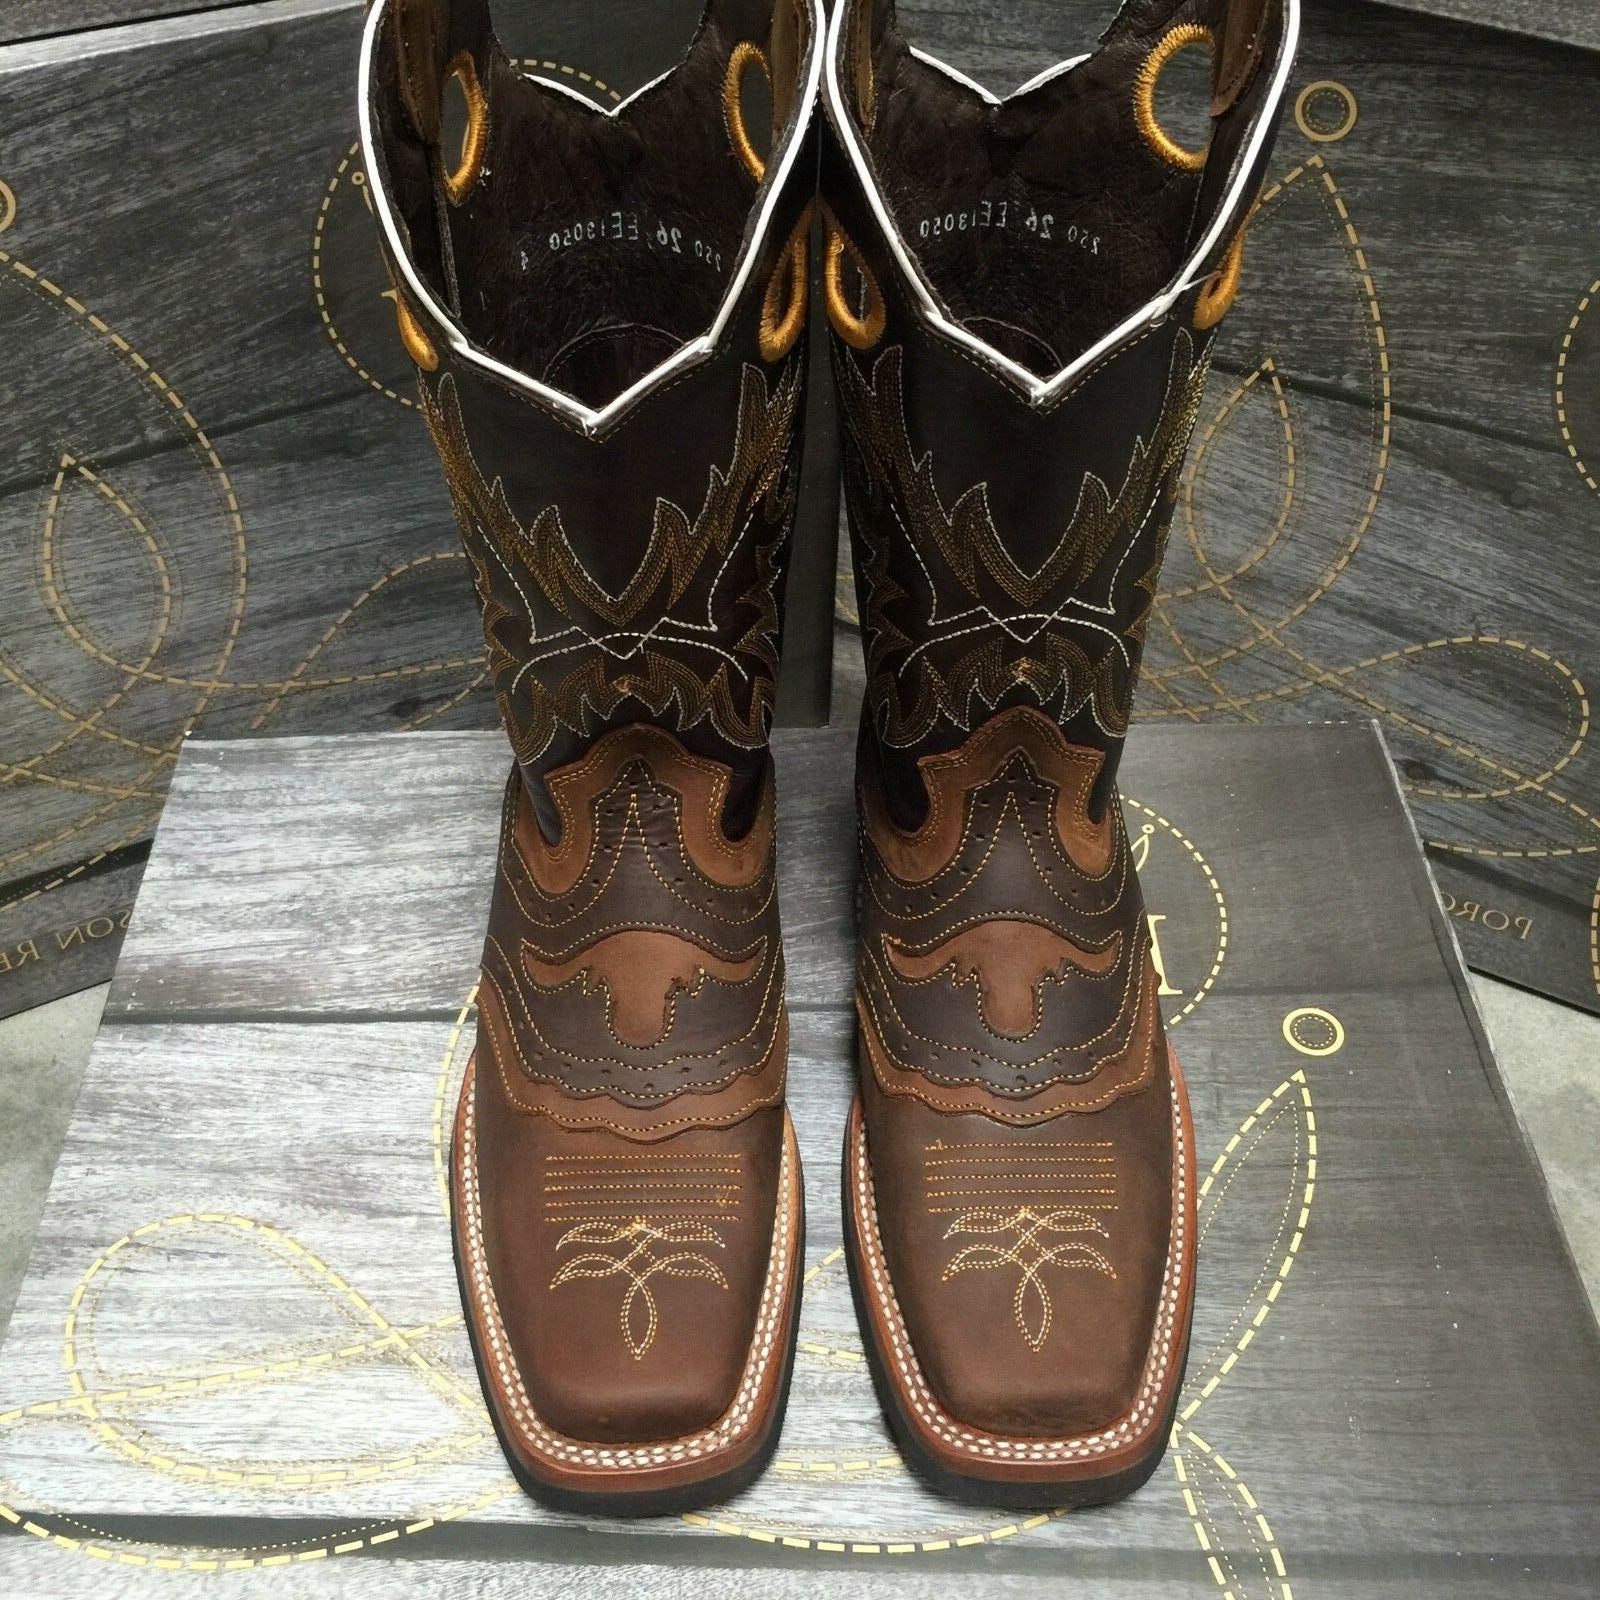 MEN'S RODEO BOOTS GENUINE WESTERN SQUARE TOE BOOTS